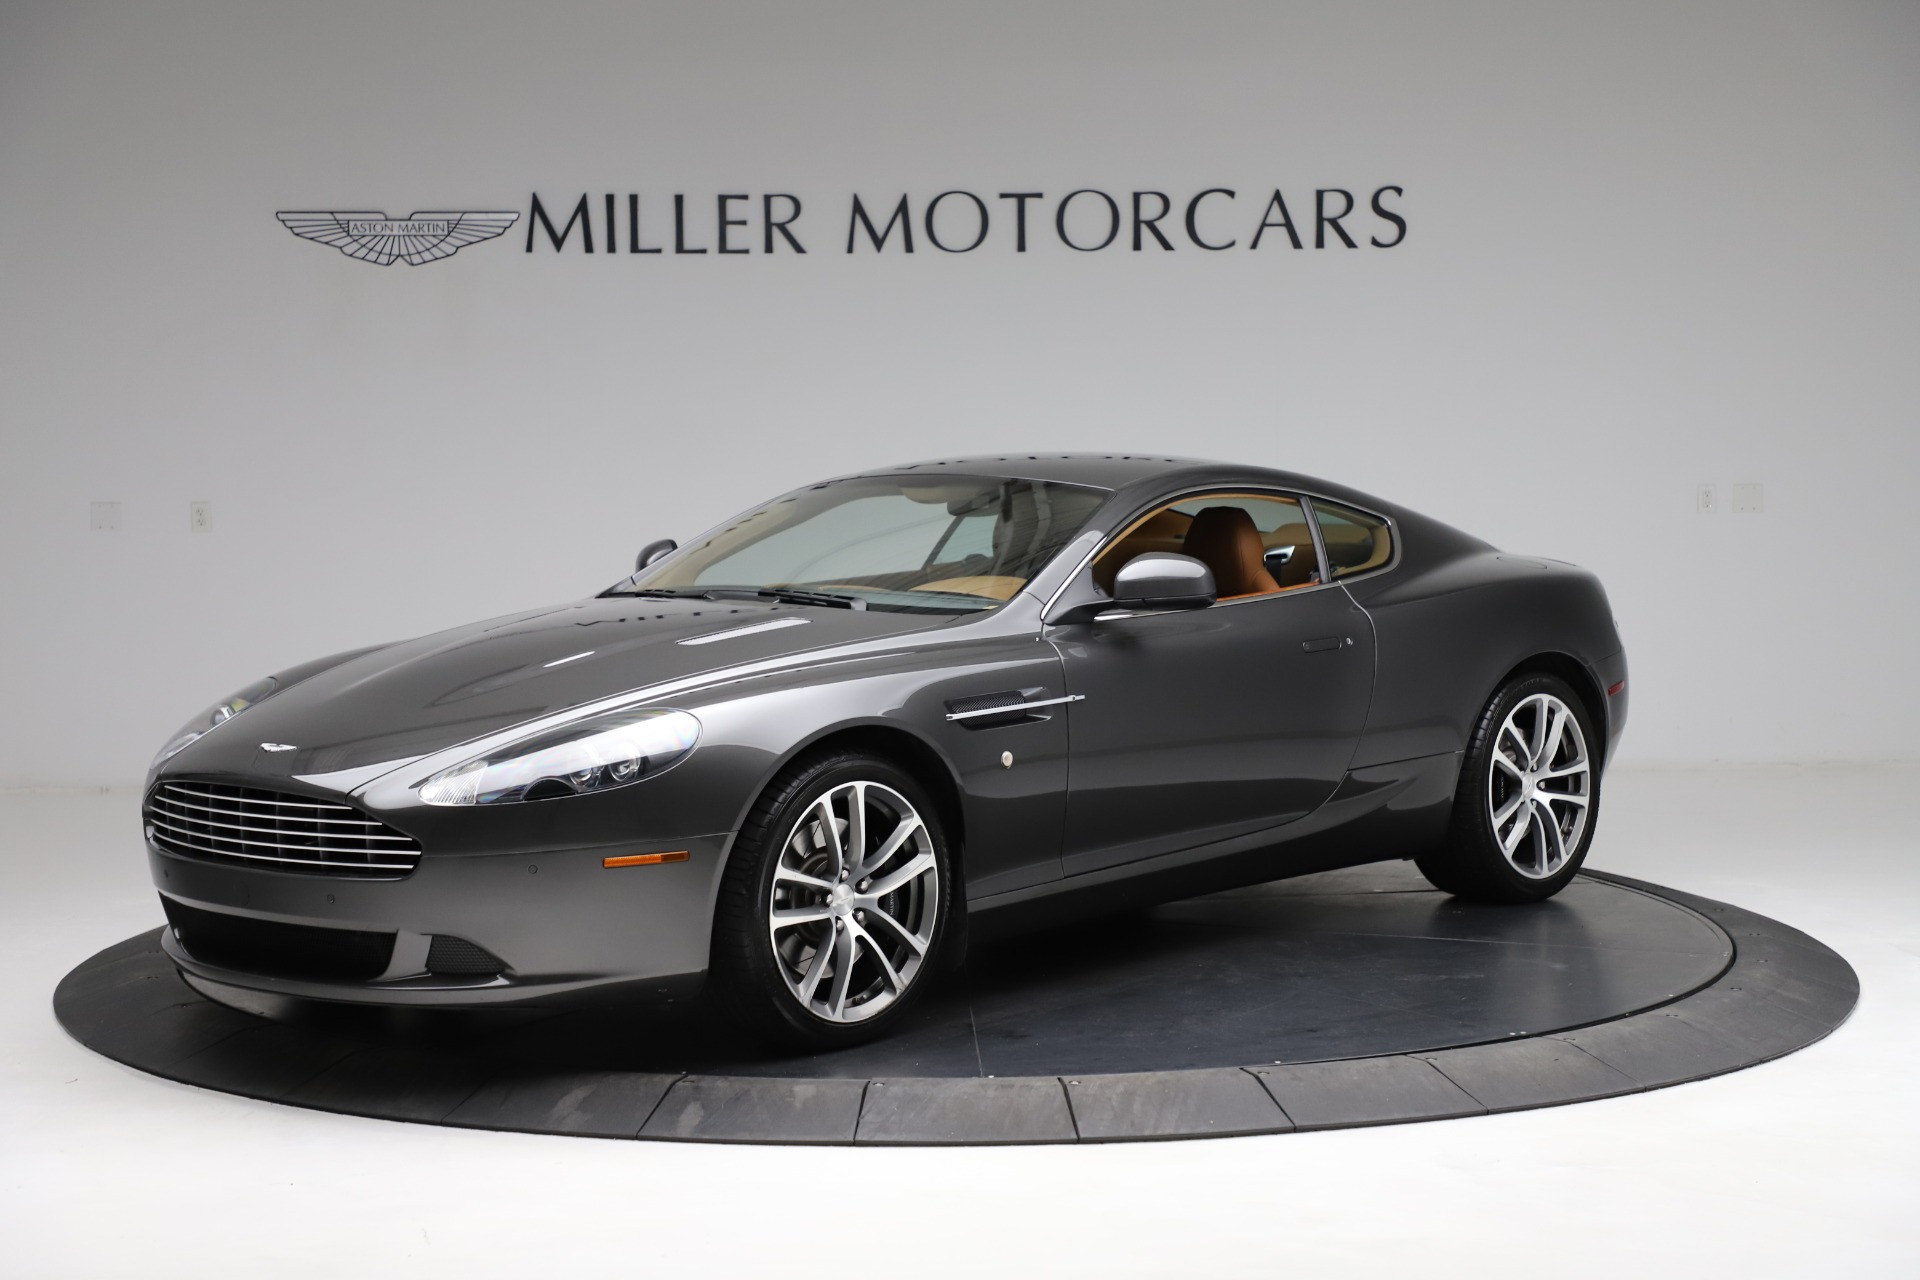 Pre Owned 2012 Aston Martin Db9 Coupe For Sale 89 990 Aston Martin Of Greenwich Stock 8058